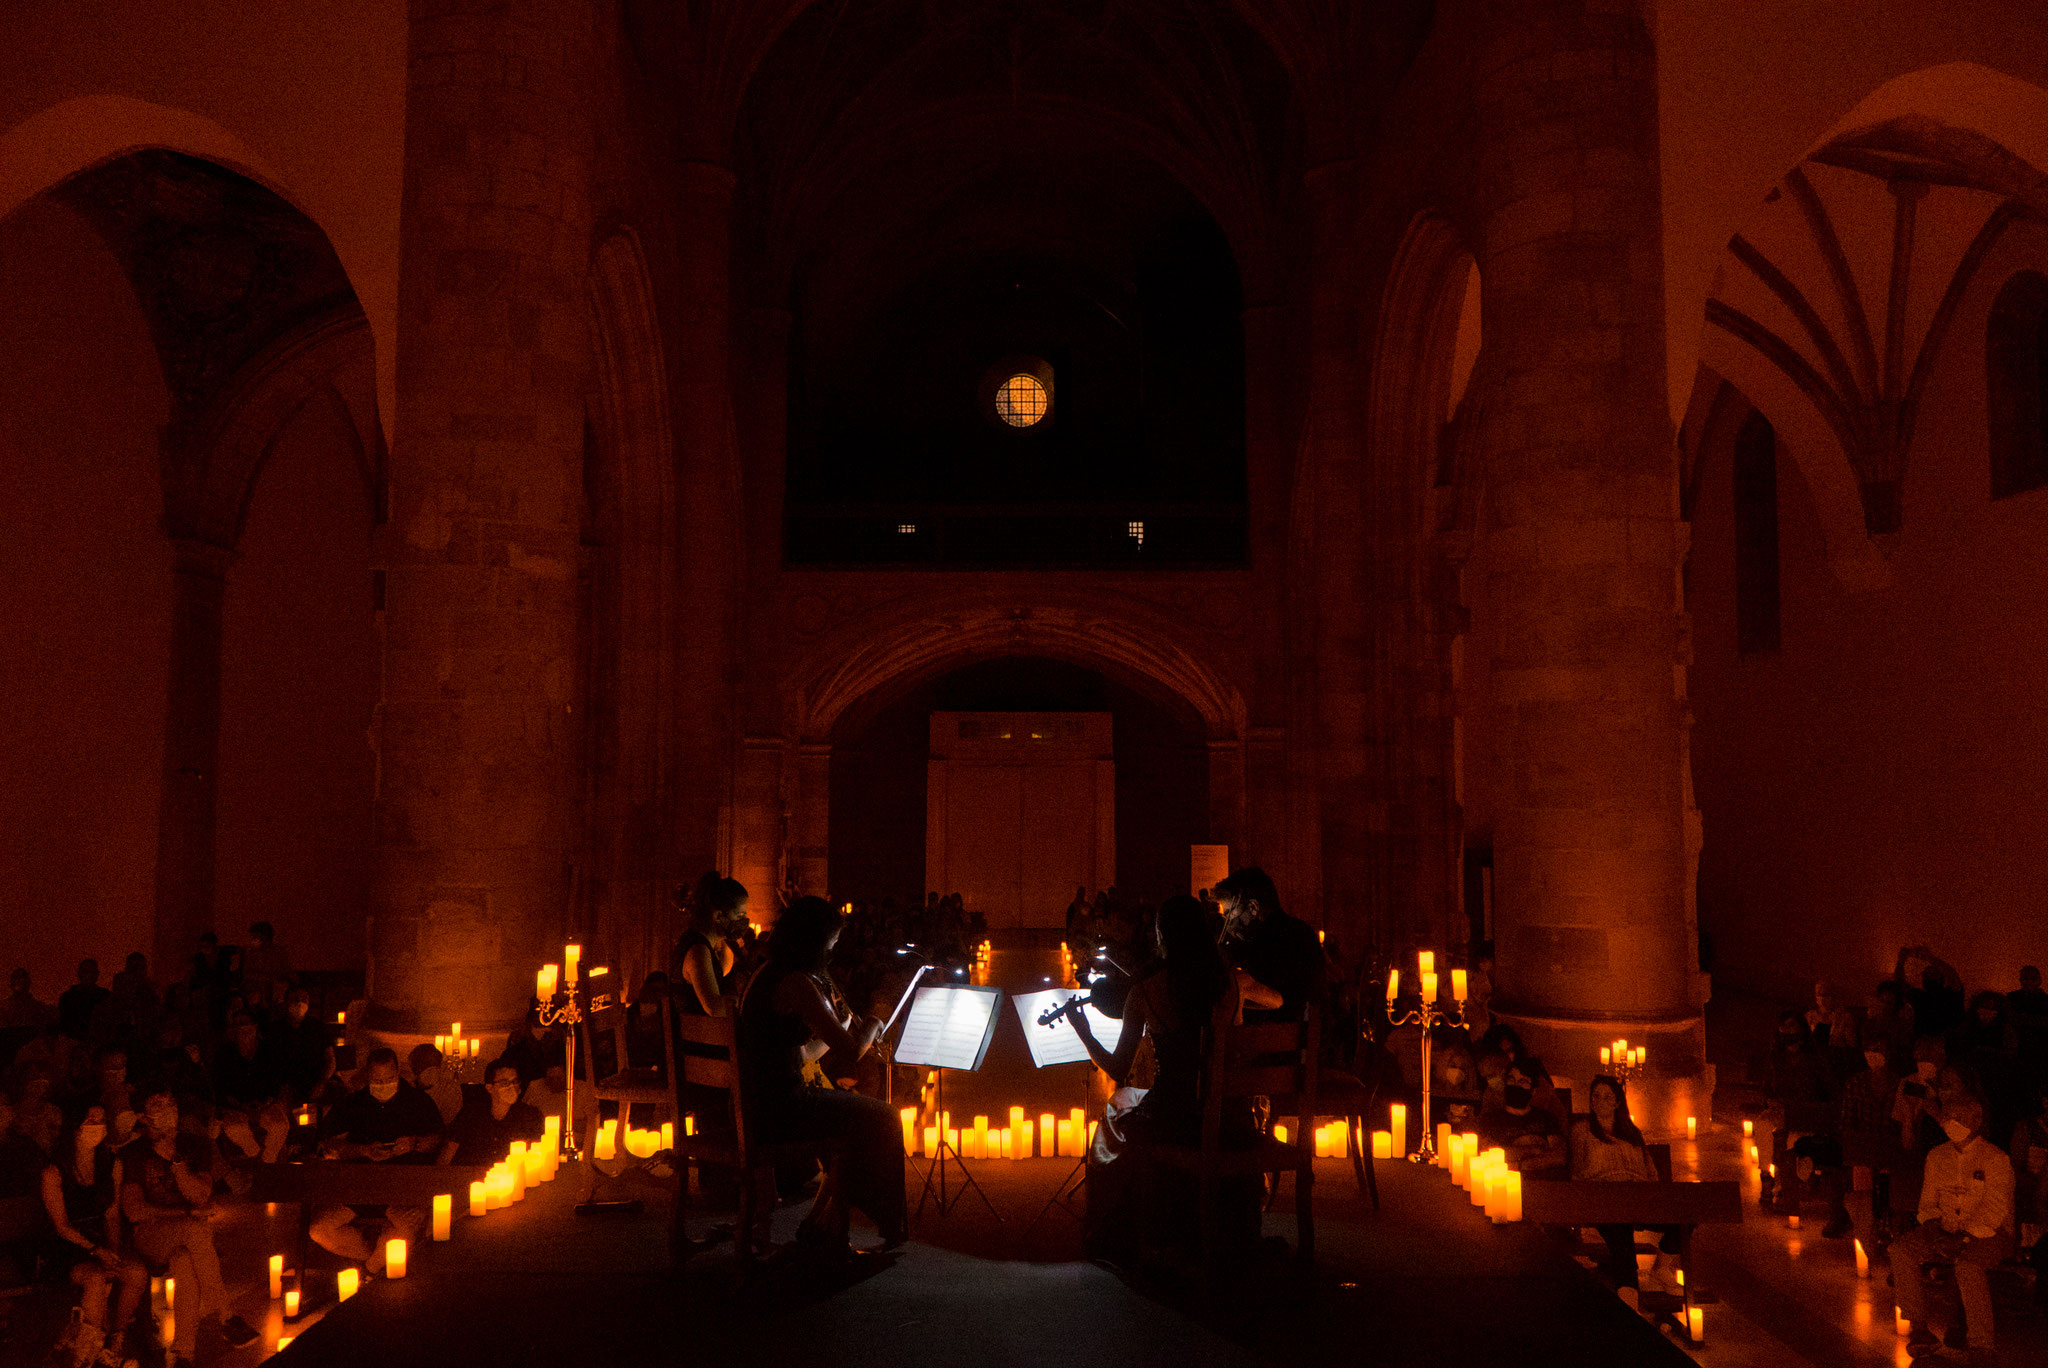 Bilbao - Candlelight Concerts